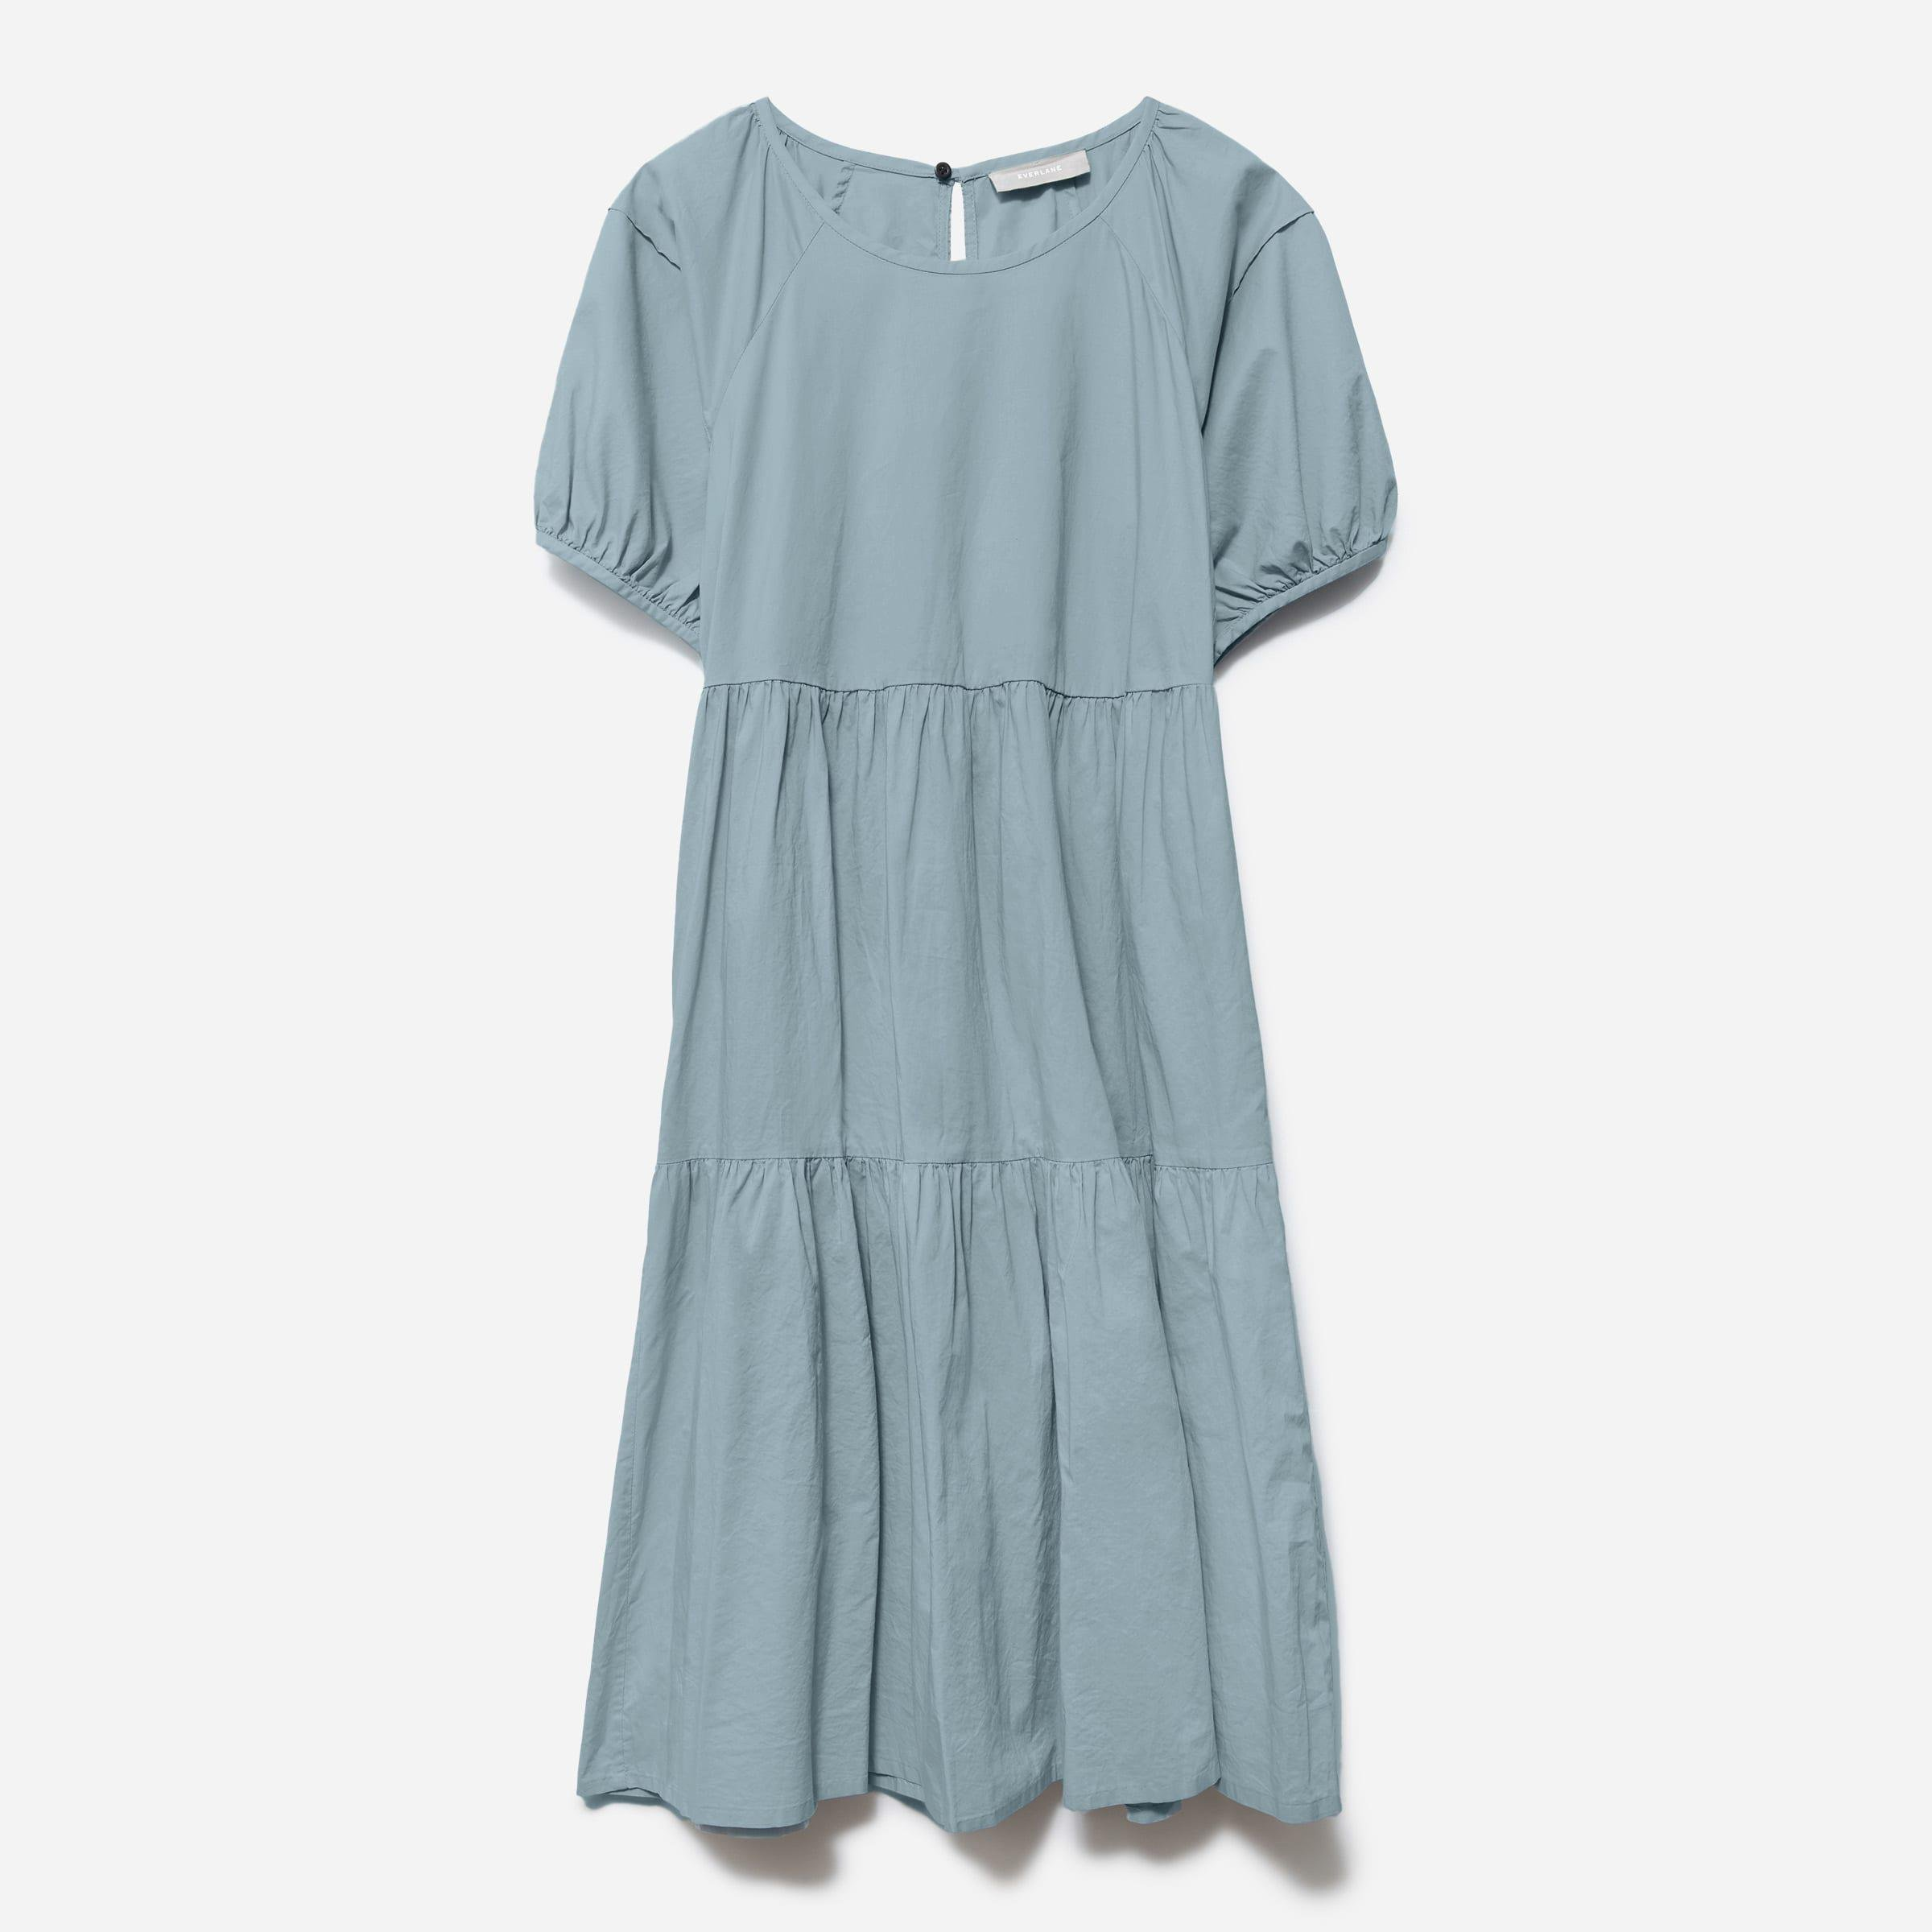 The Tiered Cotton Dress 4